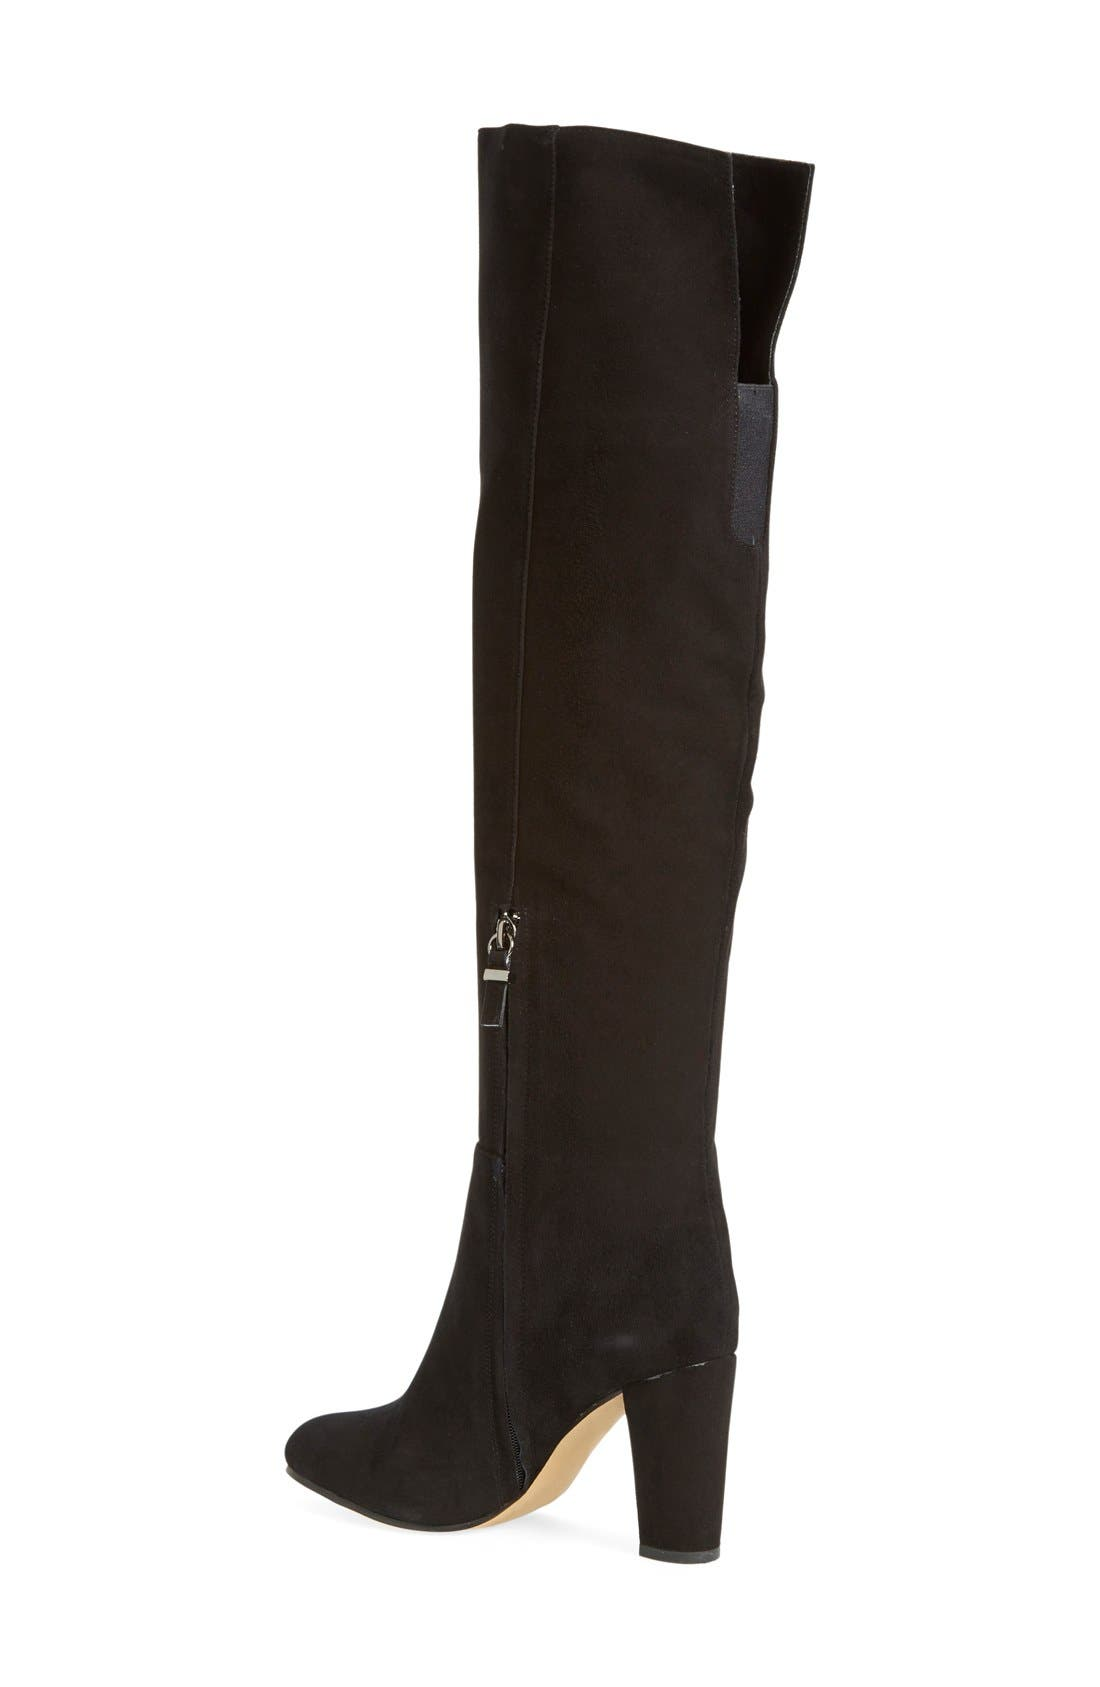 'Noble' Over the Knee Boot,                             Alternate thumbnail 2, color,                             001